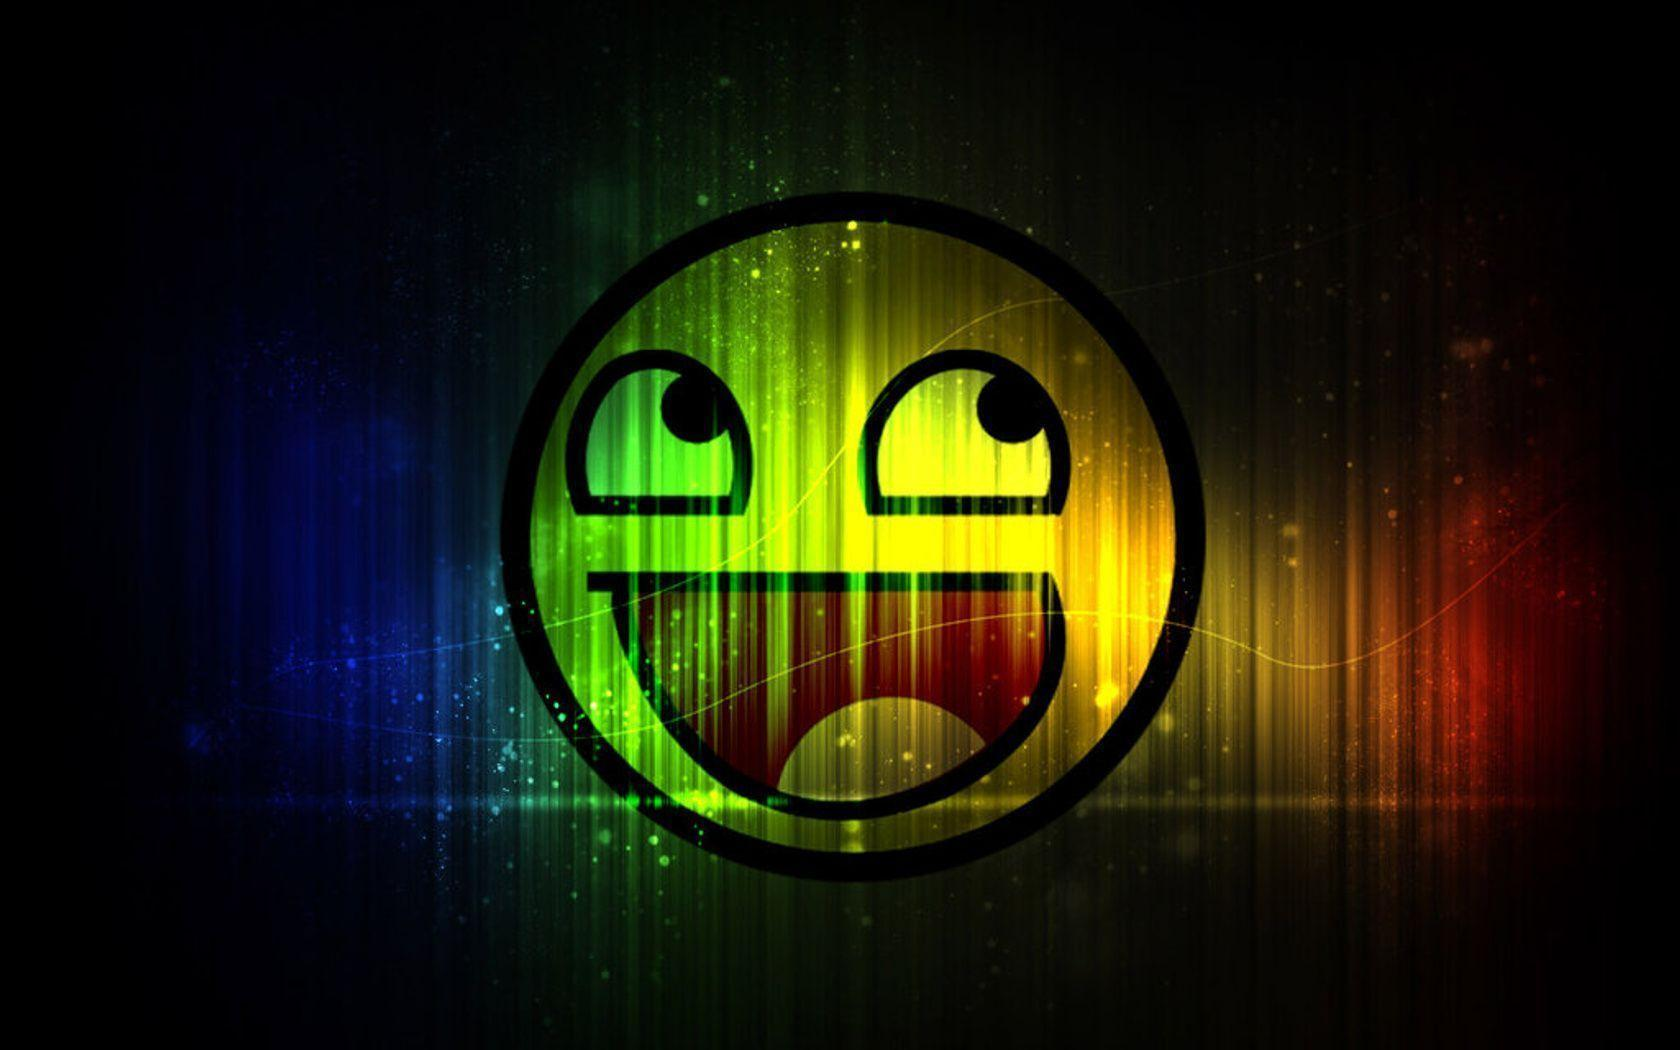 smiley face backgrounds – 1680×1050 High Definition Wallpapers